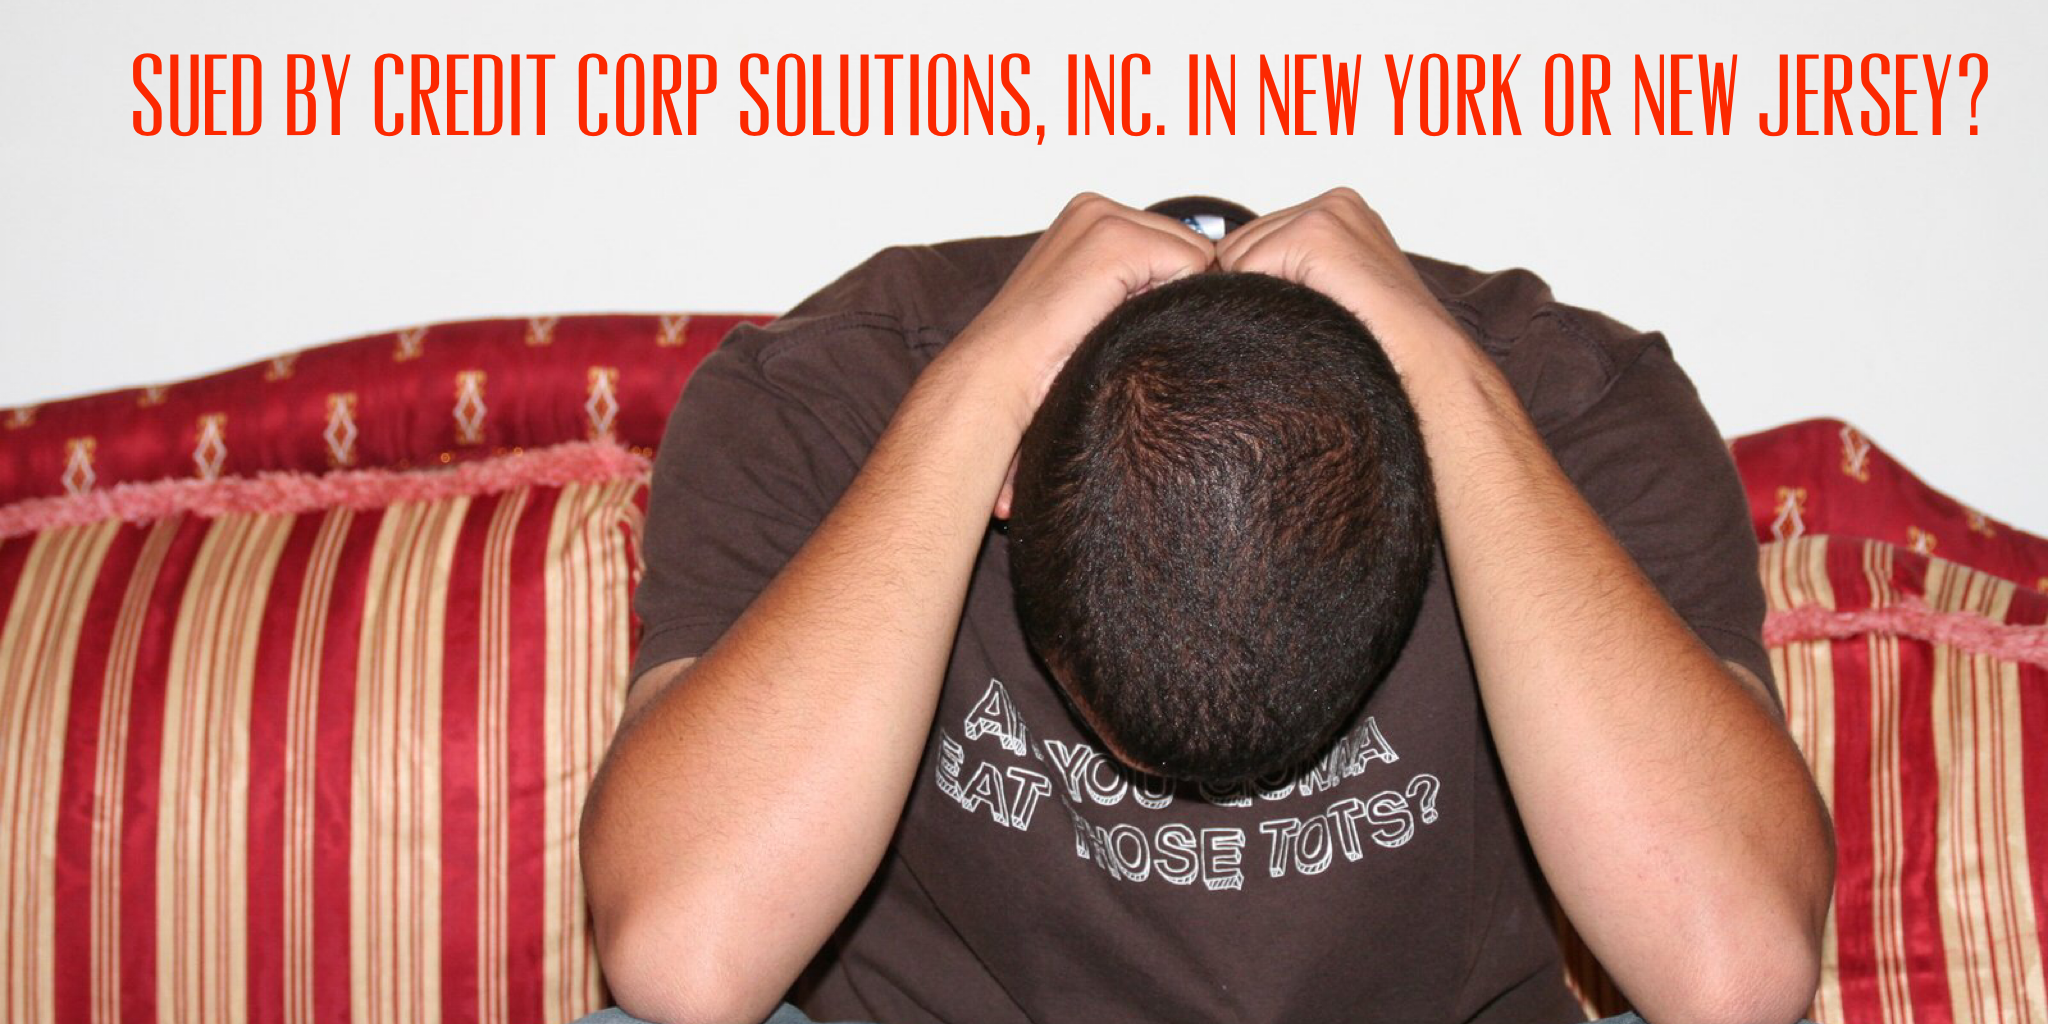 Sued By Credit Corp Solutions, Inc. in New York or New Jersey?.